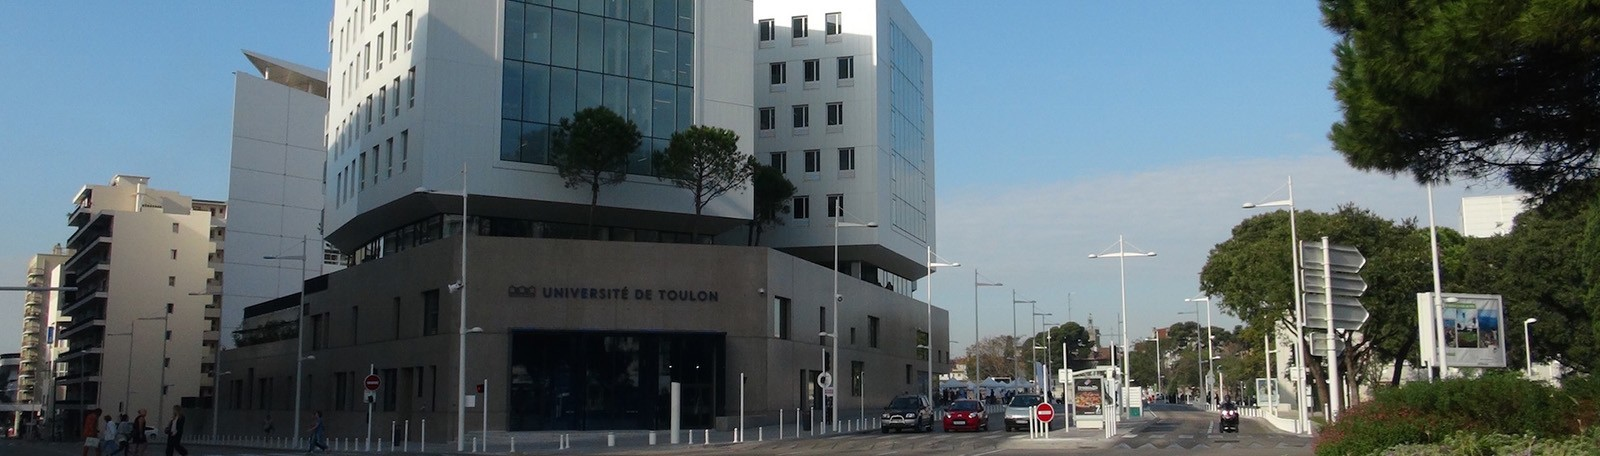 Parking Mayol Facultés - Rue Alphonse Daudet 83000 Toulon